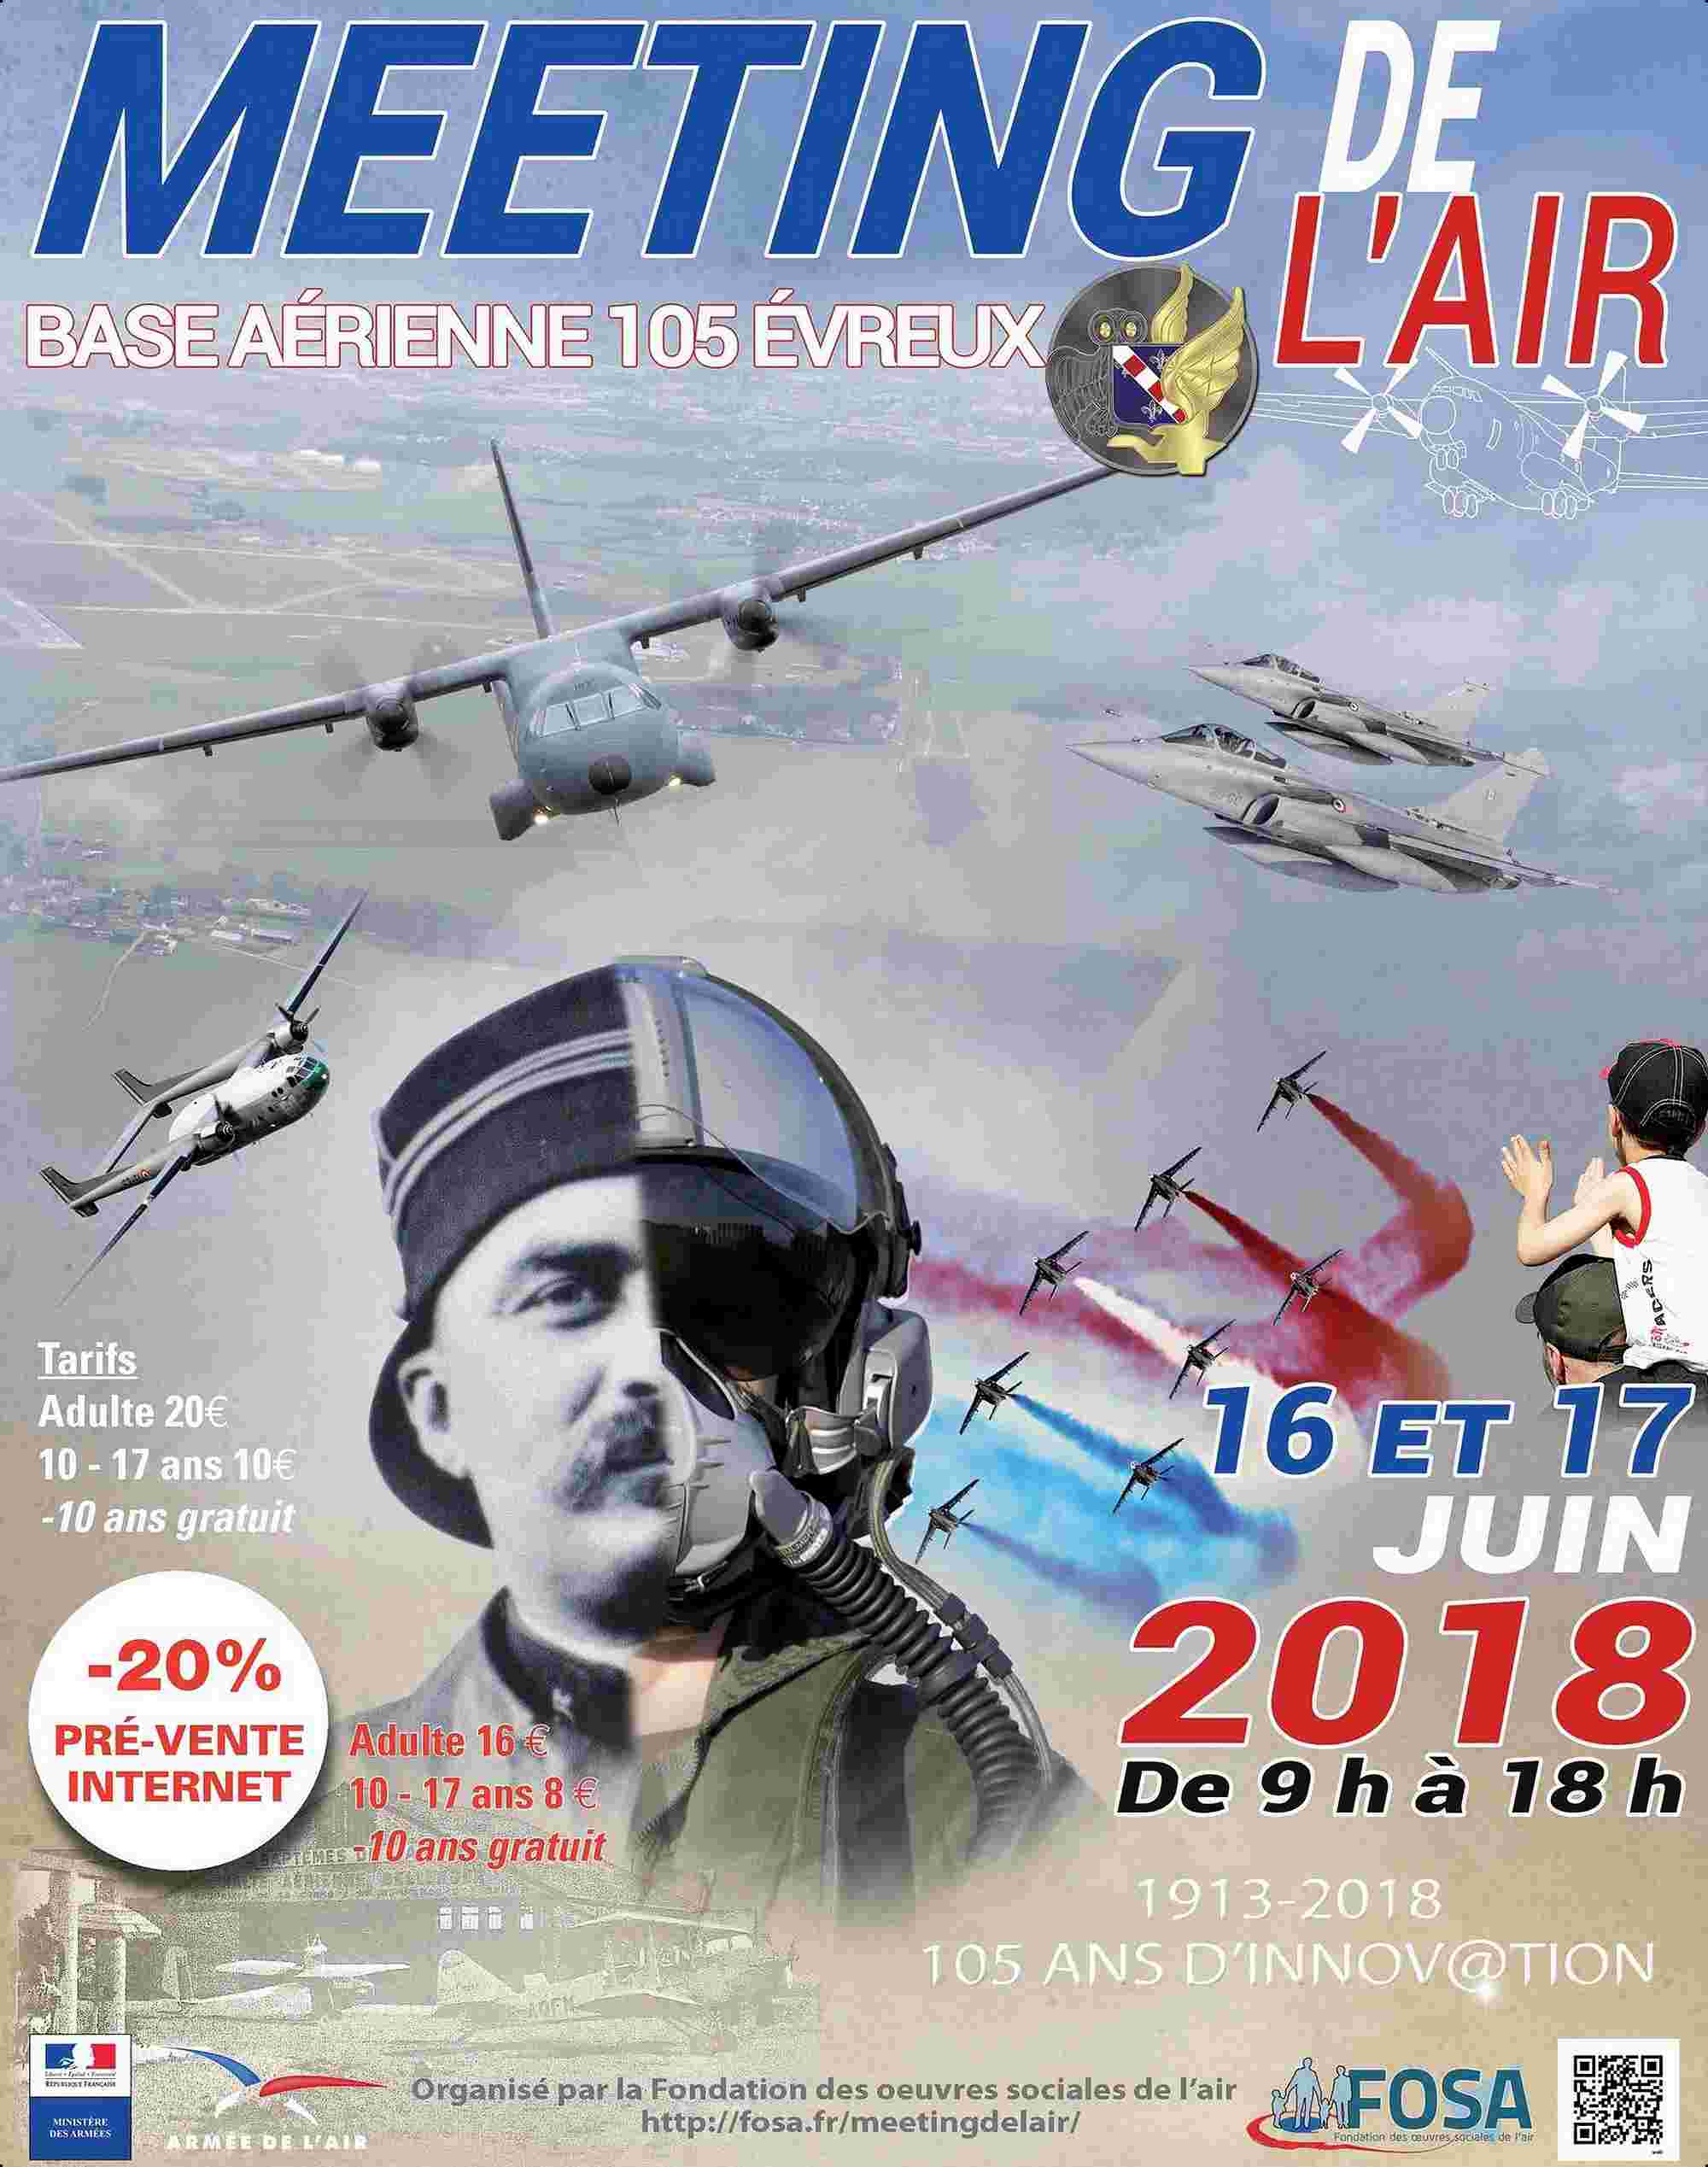 Meeting de l'Air d'Evreux 2018,Base Aerienne 105 Evreux Fauville 2018, Spotter FOSA , meeting aerien 2018